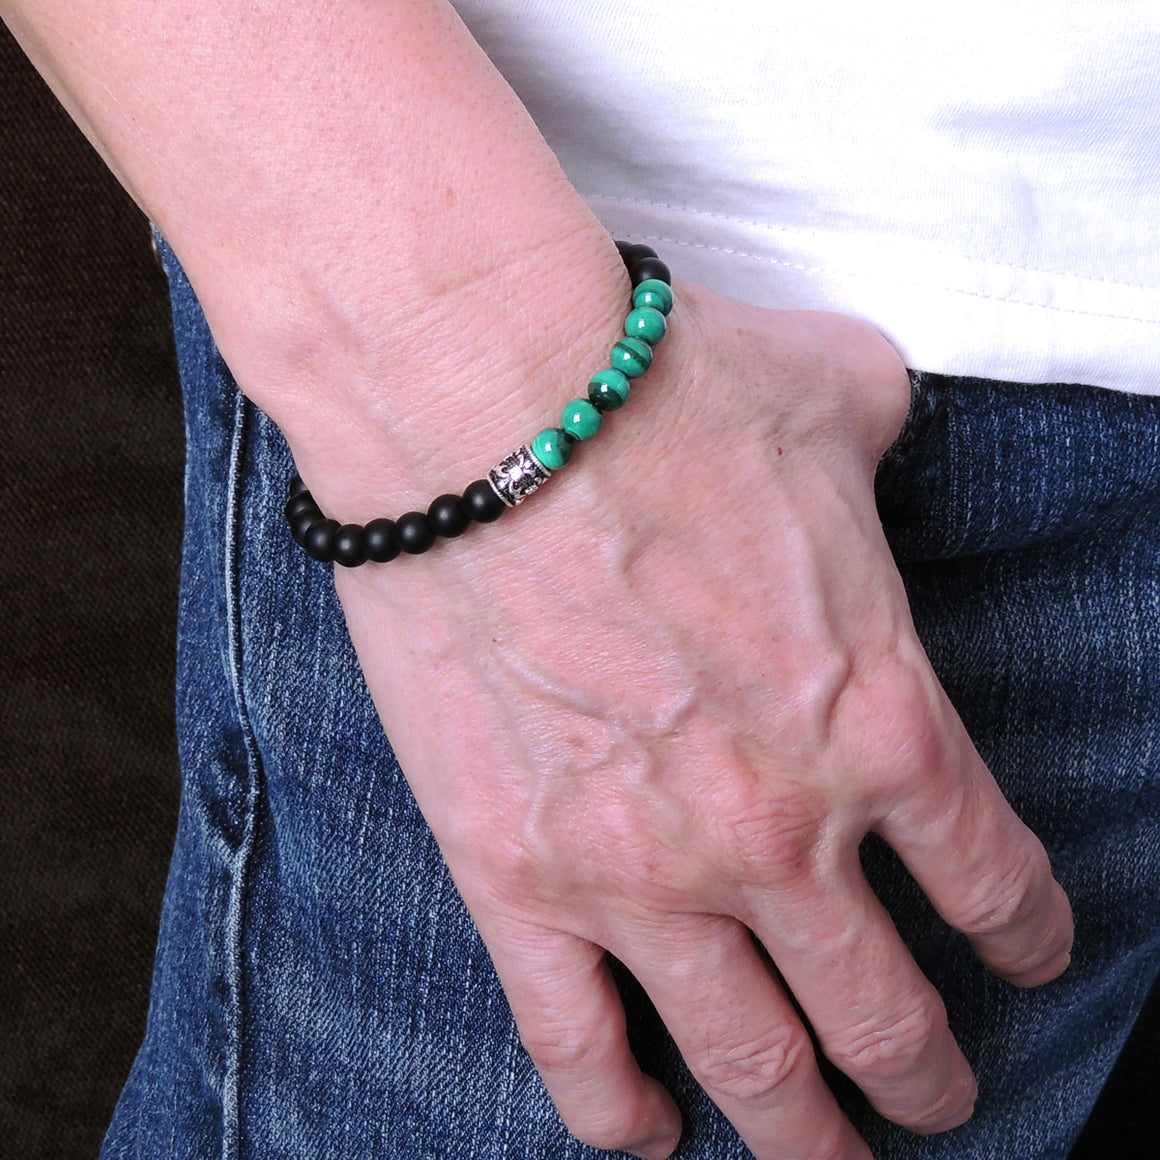 Handmade Braided Fleur de Lis Bracelet - Malachite & Matte Black Onyx 6mm Gemstones, Adjustable Drawstring, S925 Sterling Silver Barrel Bead BR1583